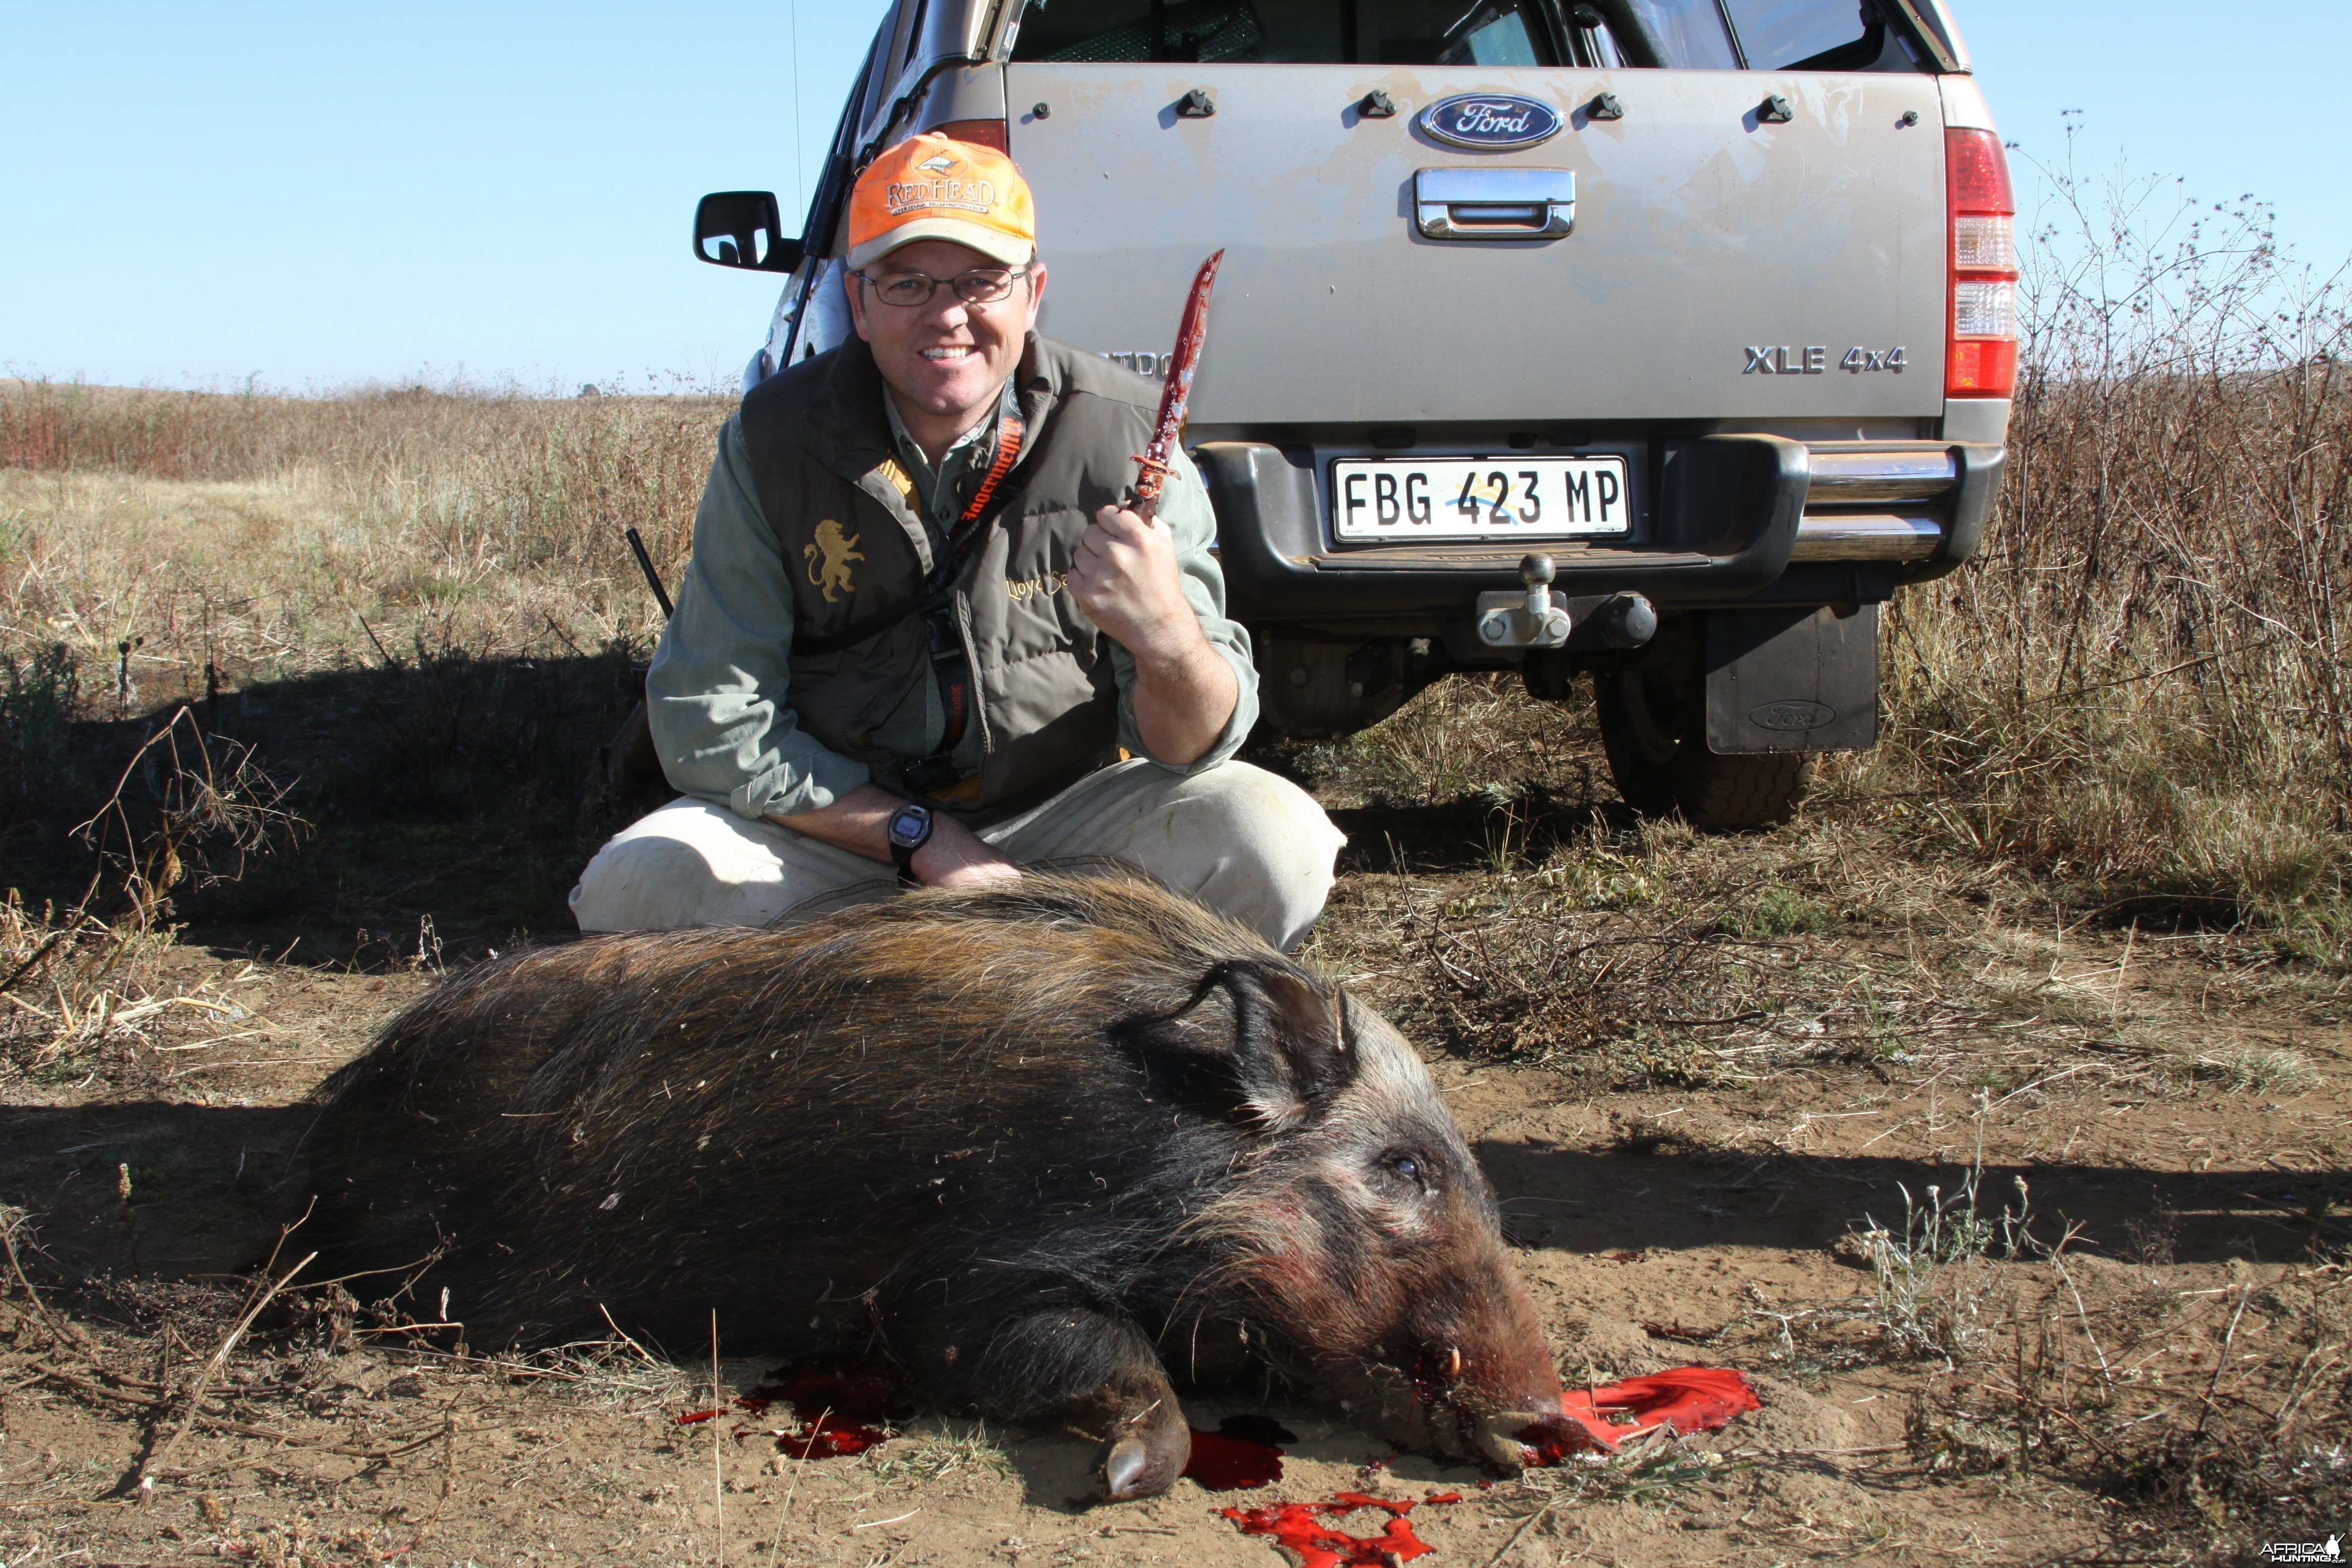 Bushpig hunting with hounds in South Africa